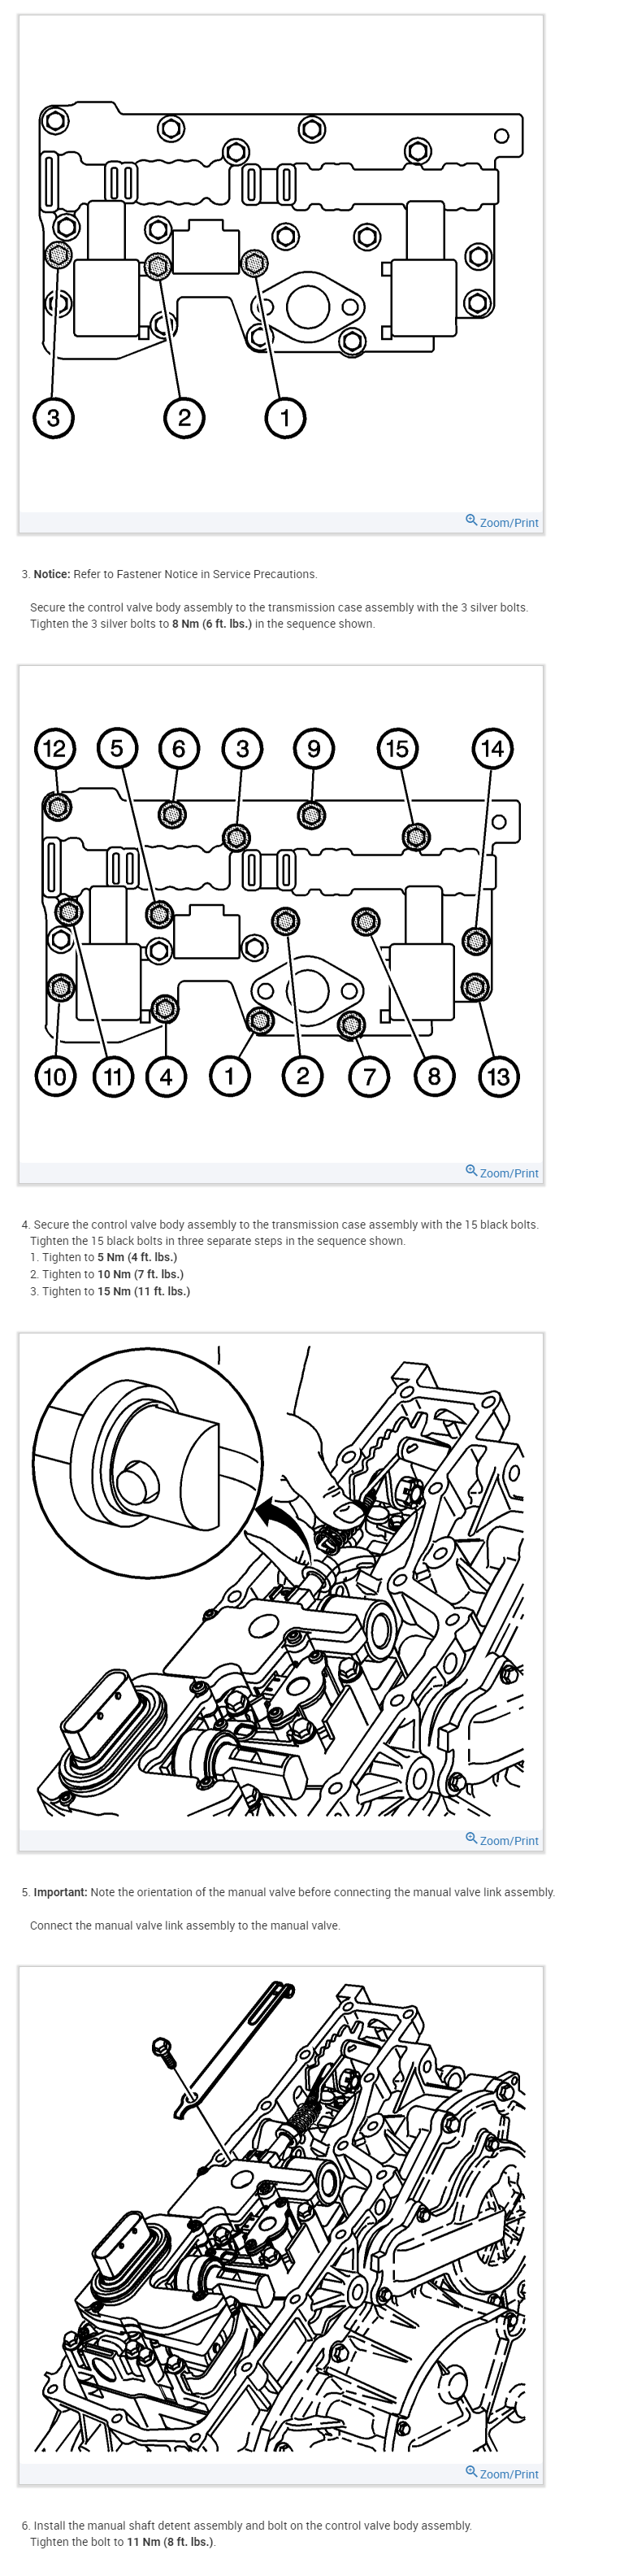 On A 2003 Saturn Ion Vt25e Cvt What Is The Torque Specs And Vue Fluid Bb2c910e 506d 4cc3 Ad2e 81b2333e08c0 2018 05 21 171828